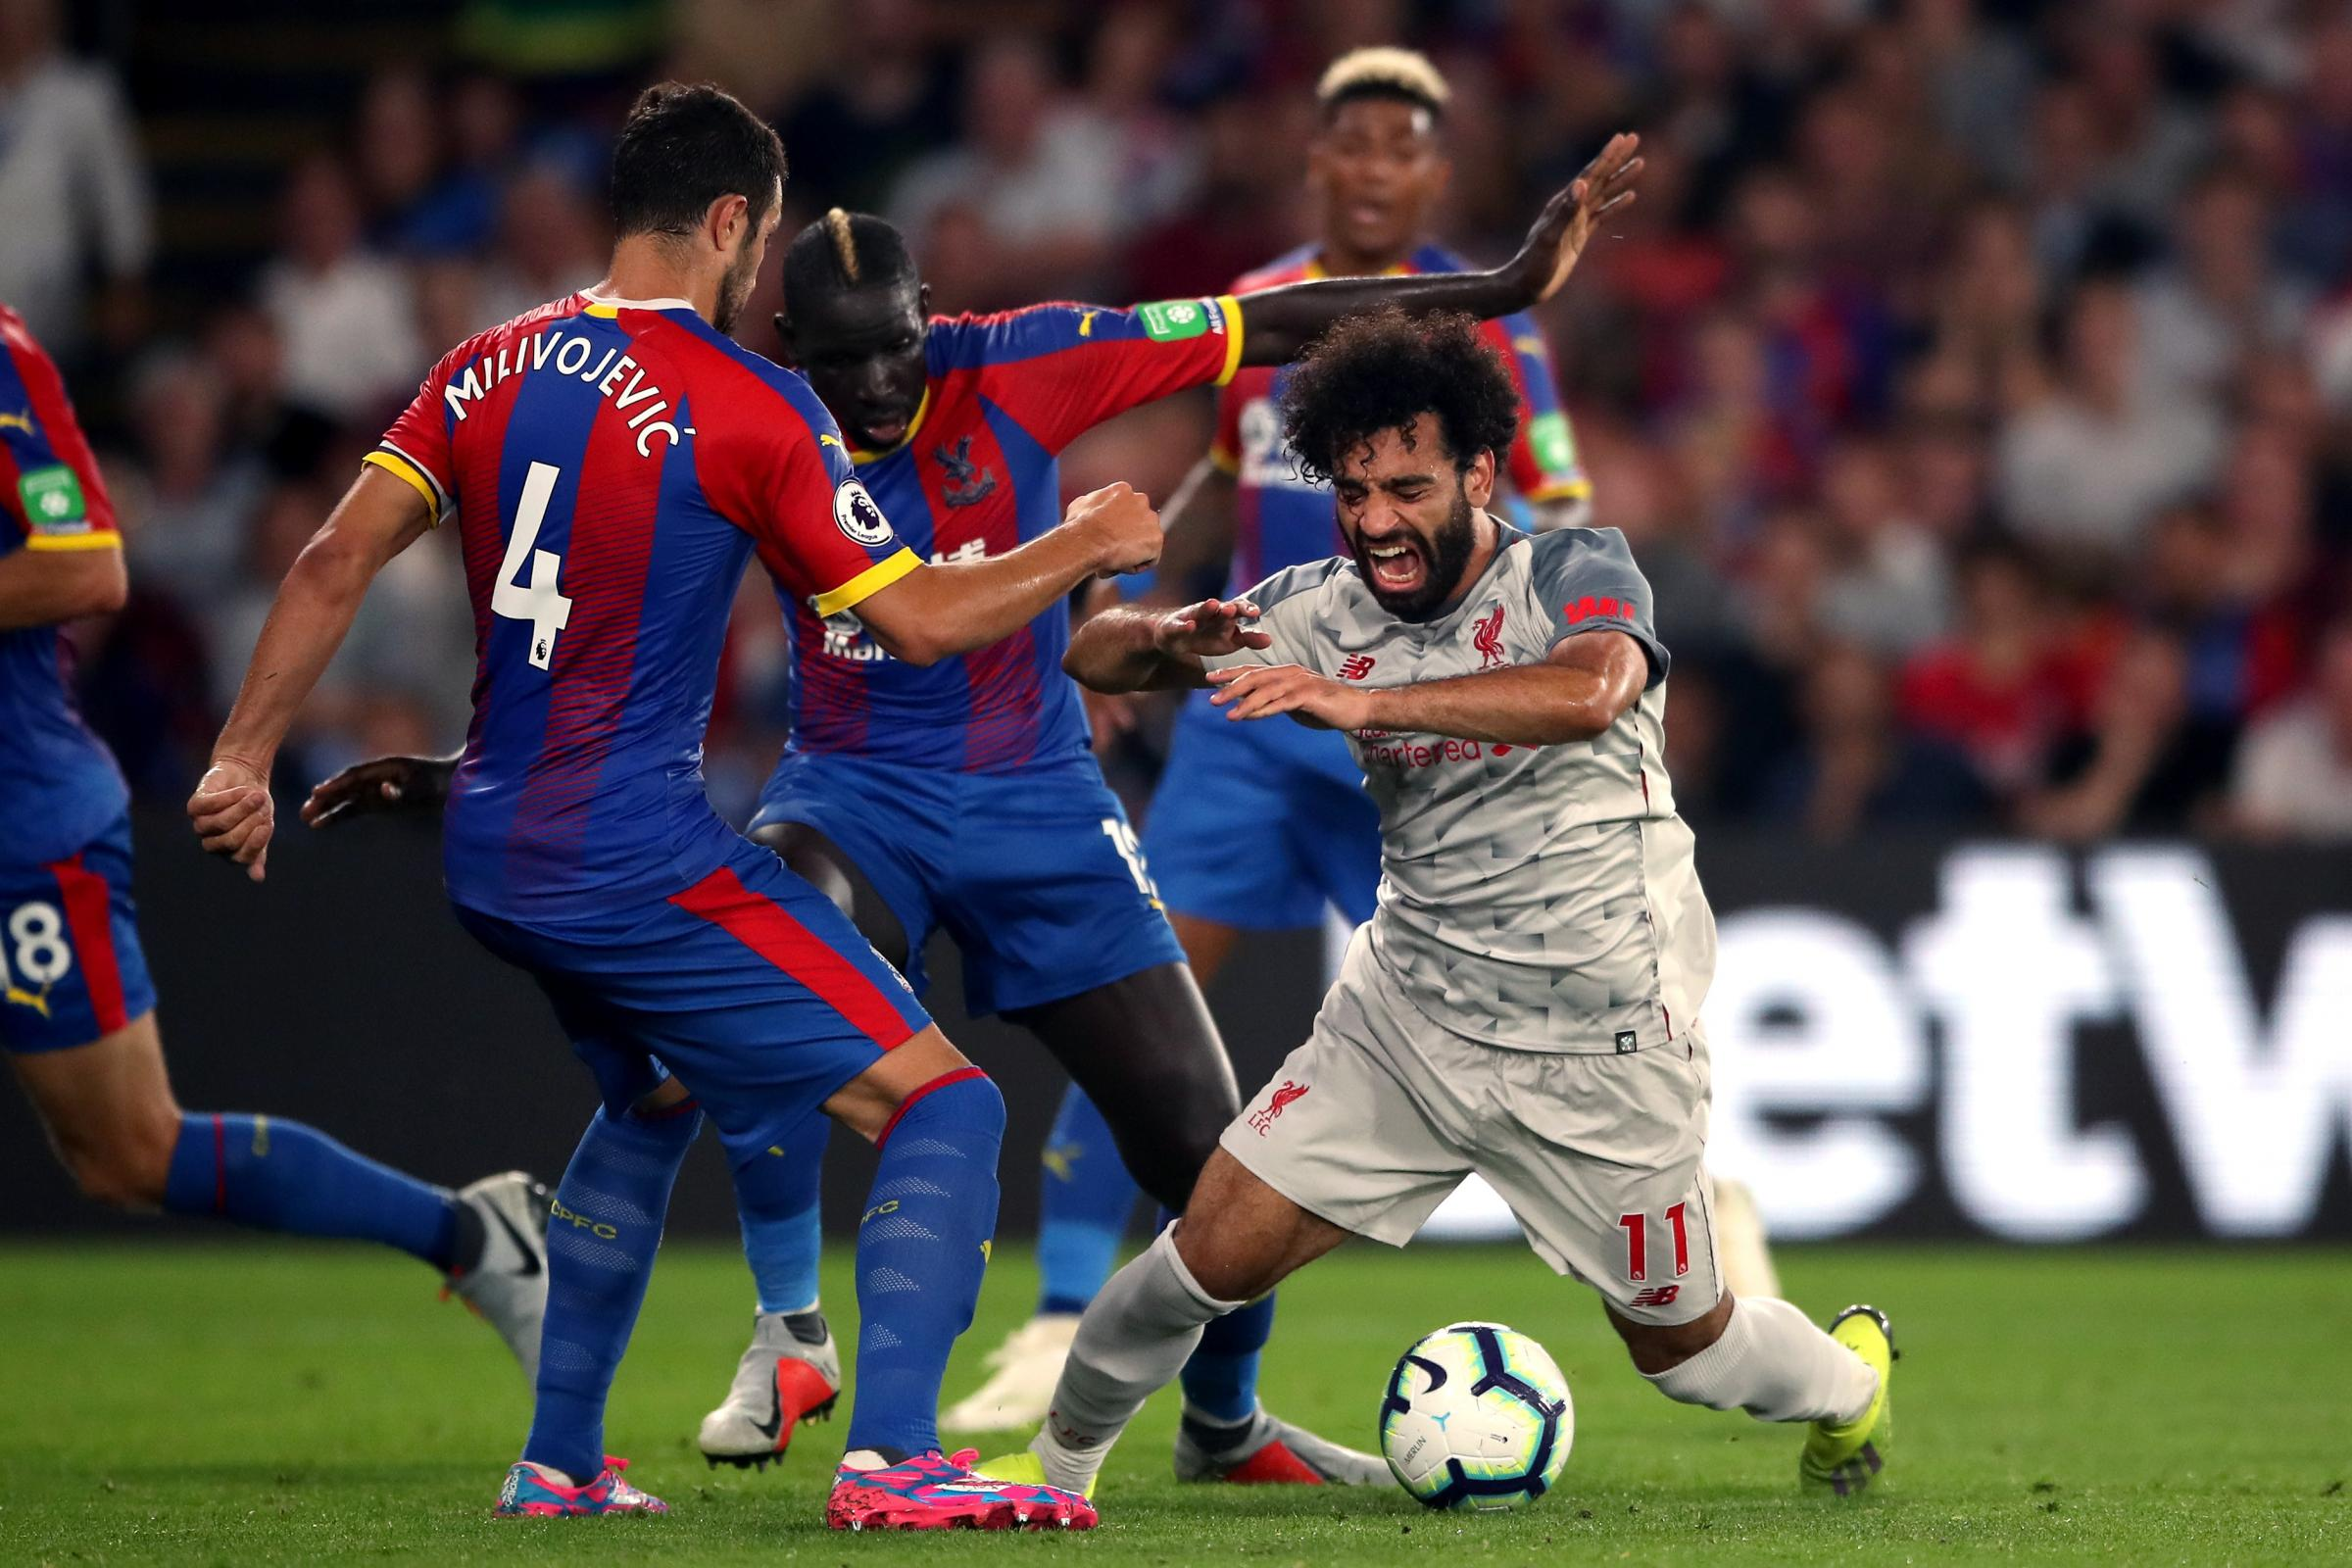 Mohamed Salah went down under pressure from Mamadou Sakho